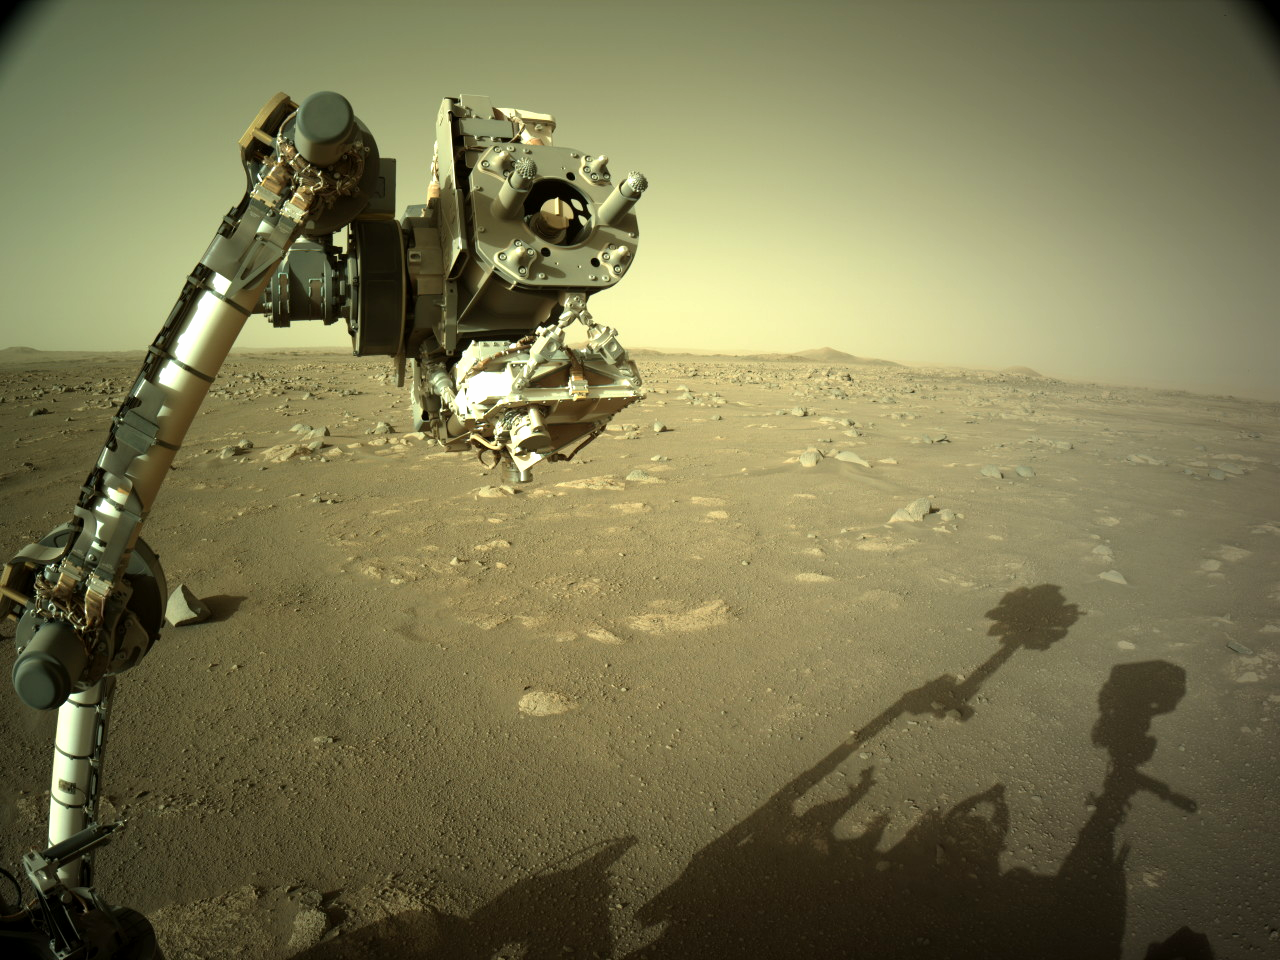 Actual image taken by the Perseverance rover on Mars